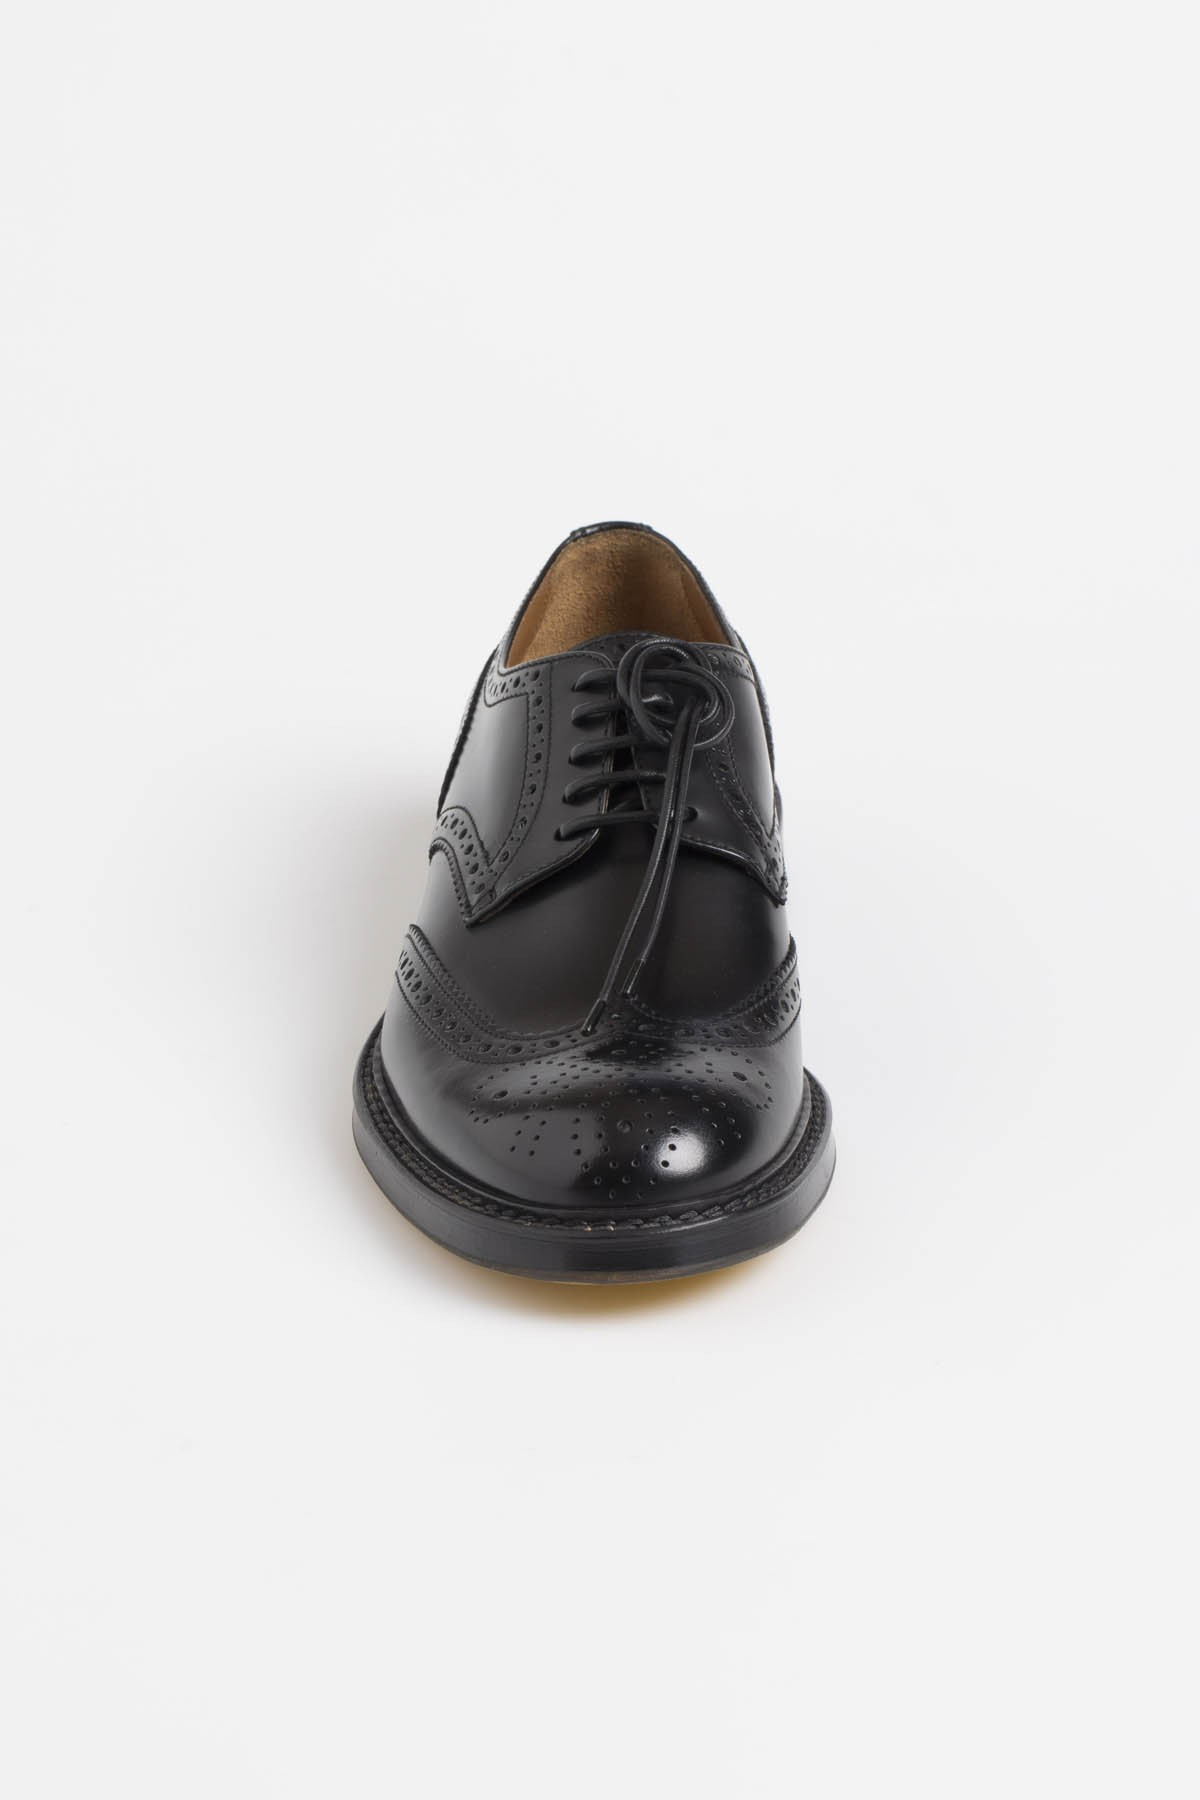 Shoes for man BROGUES DOUCAL'S F/W 18-19